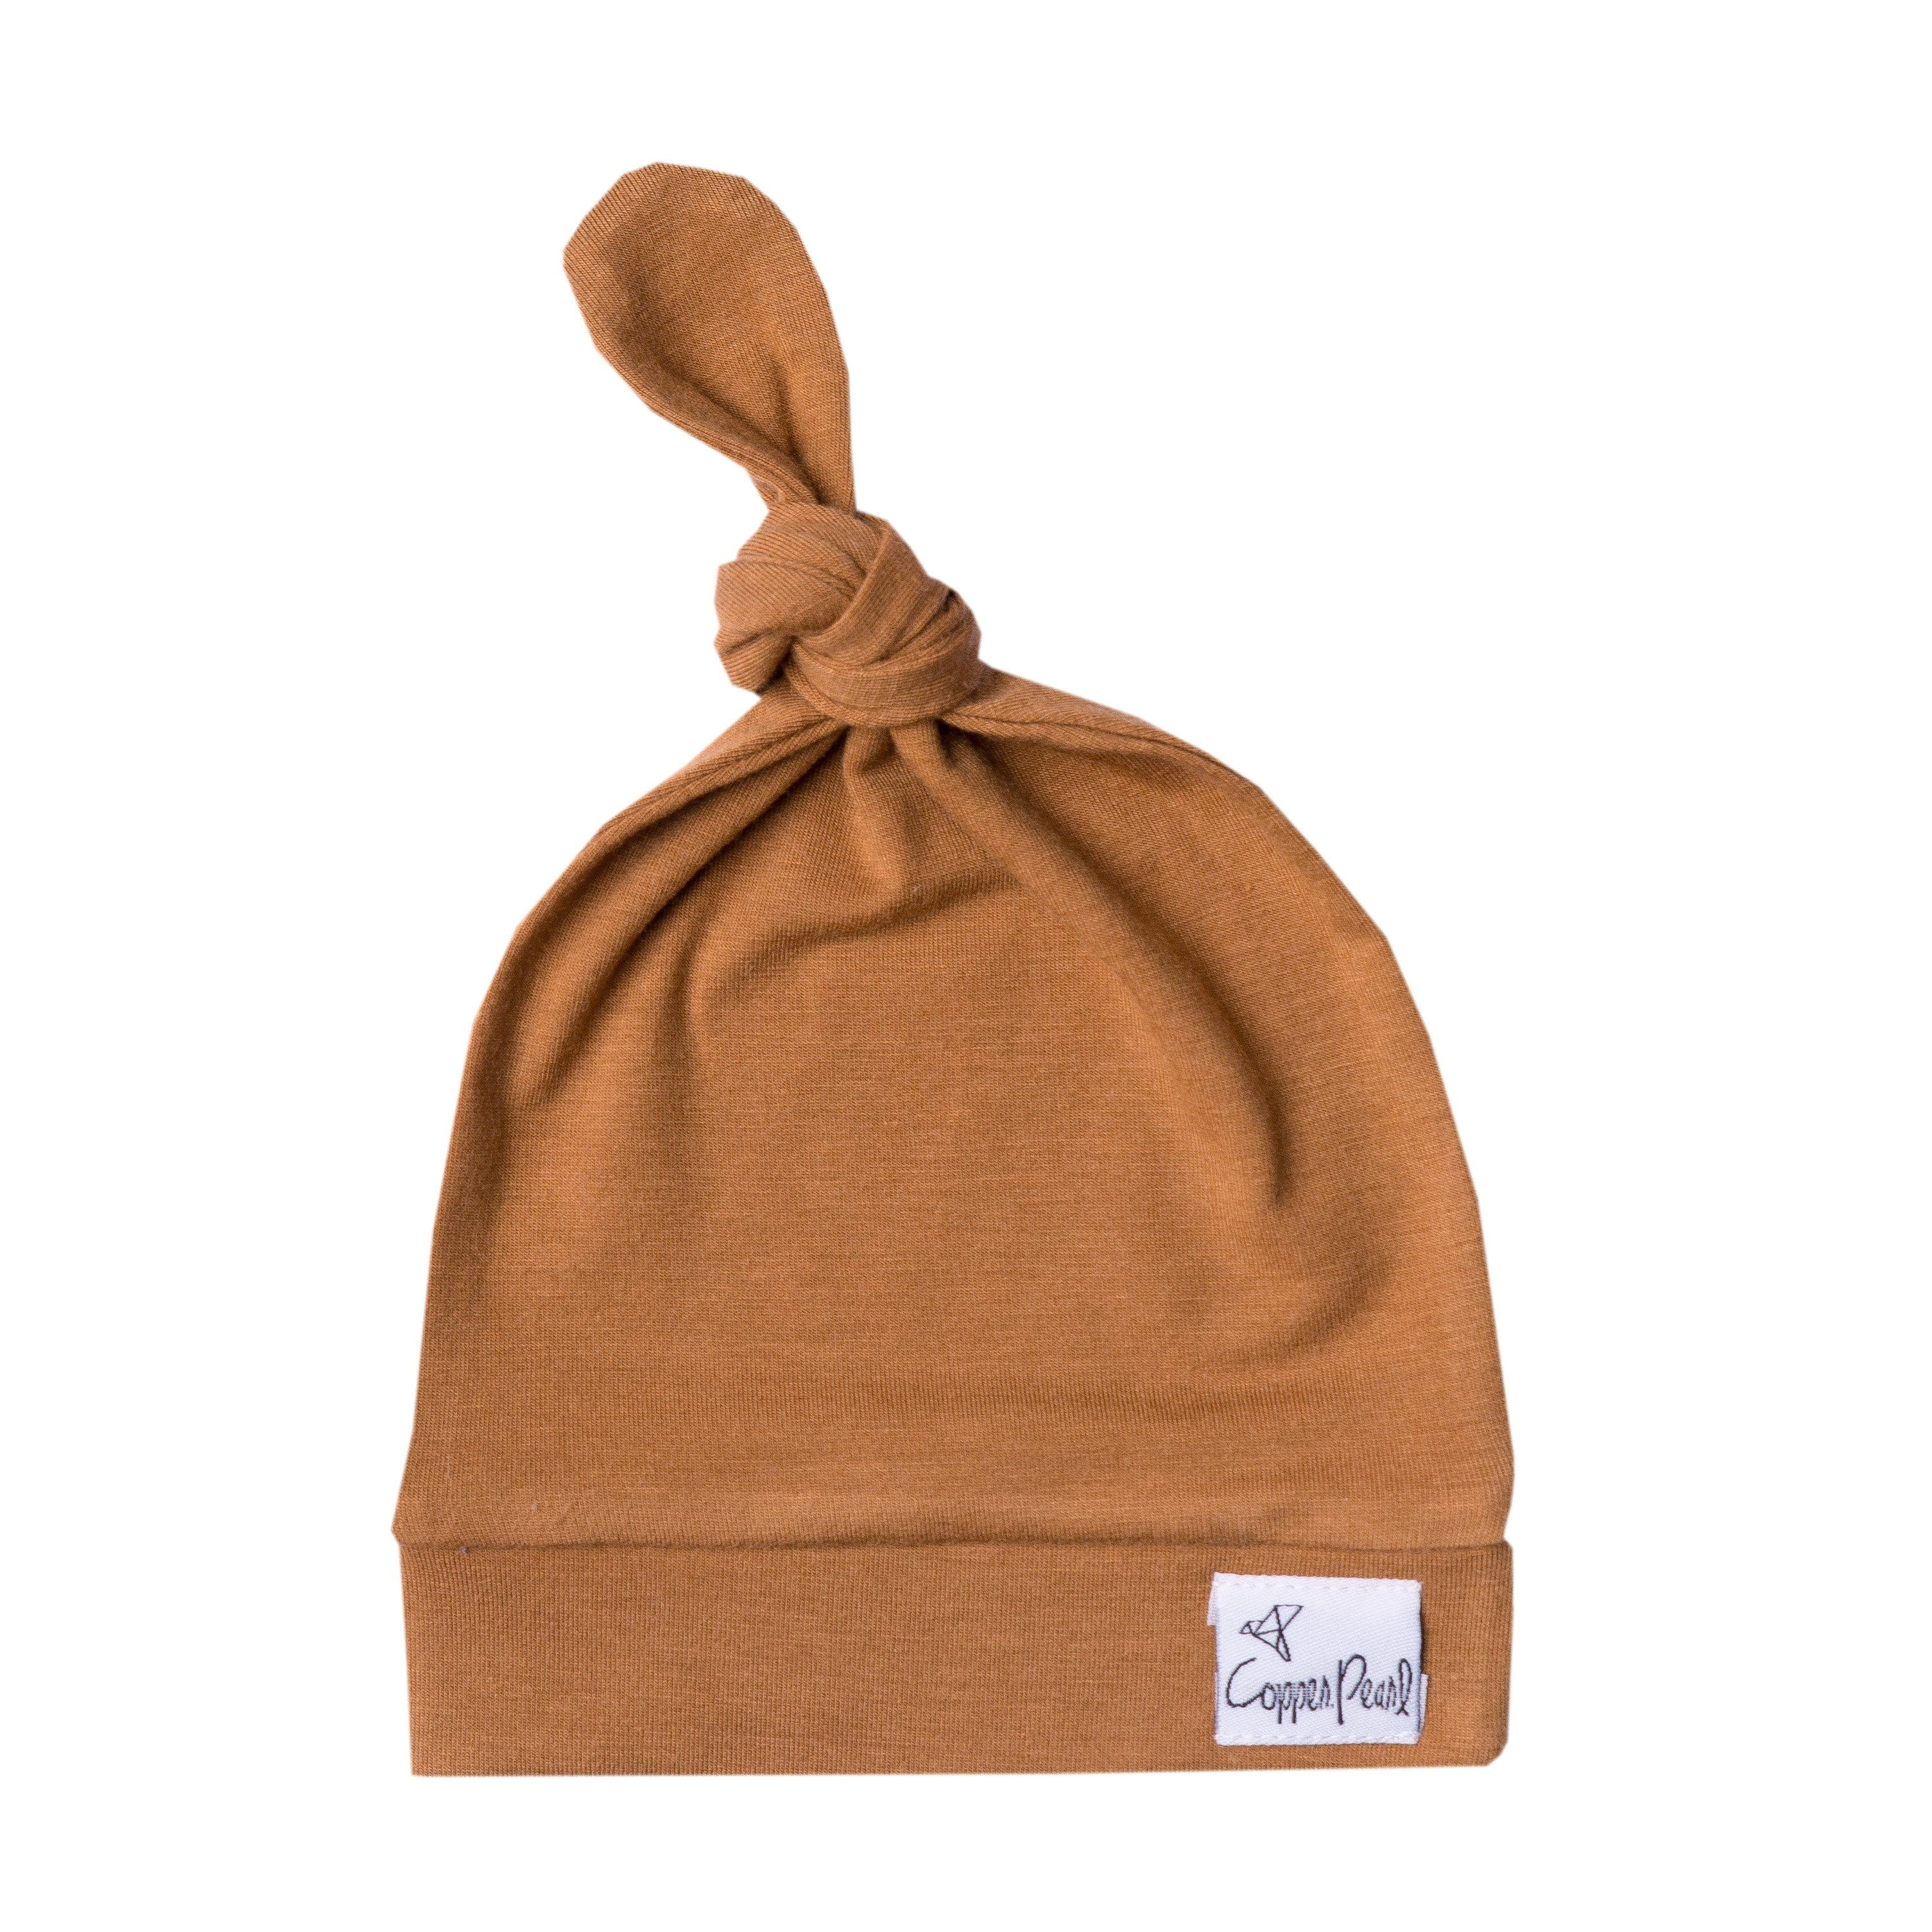 Copper Pearl Baby Beanie Hat Top Knot Stretchy Soft Alder